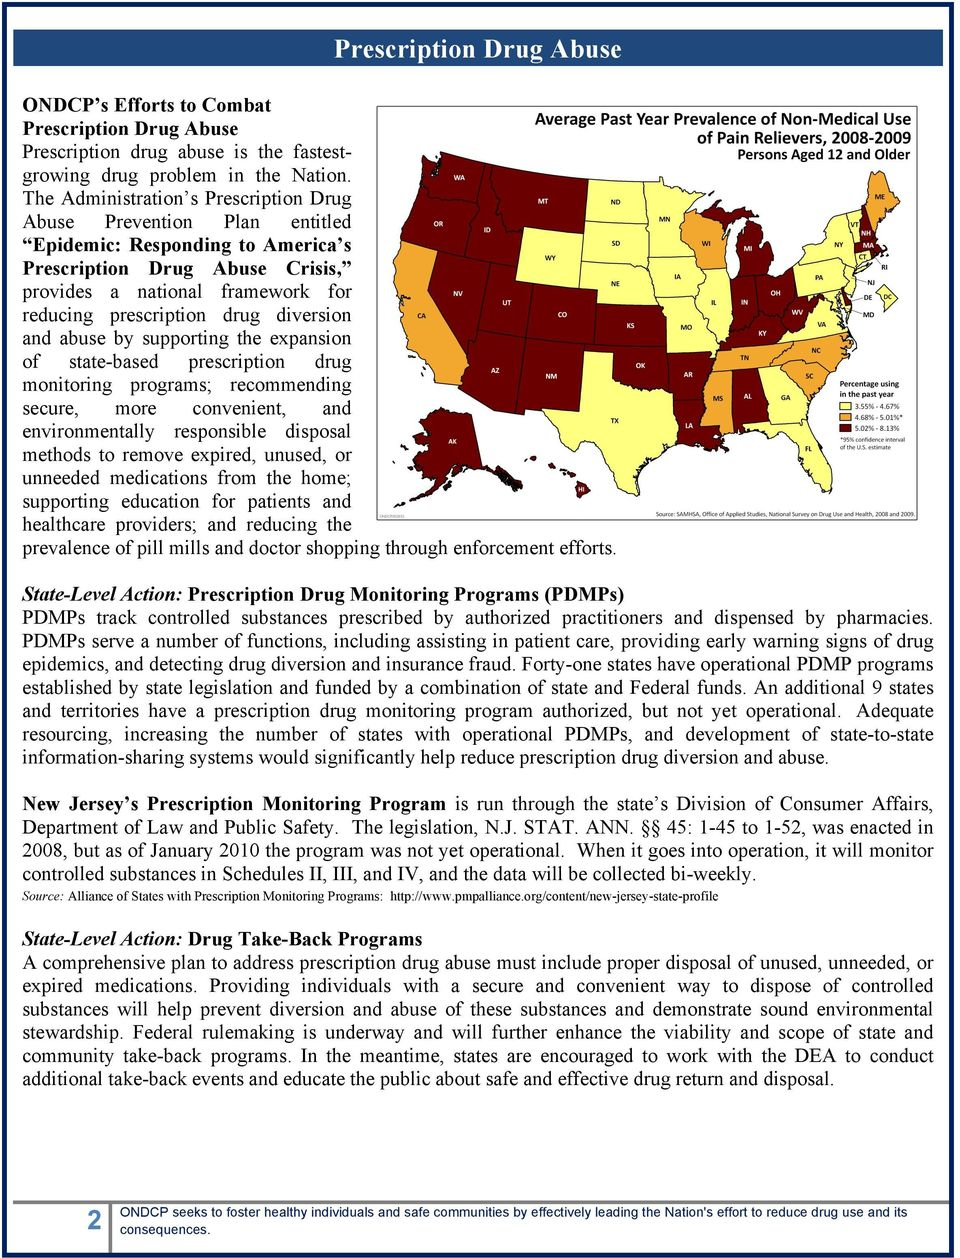 diversion and abuse by supporting the expansion of state-based prescription drug monitoring programs; recommending secure, more convenient, and environmentally responsible disposal methods to remove